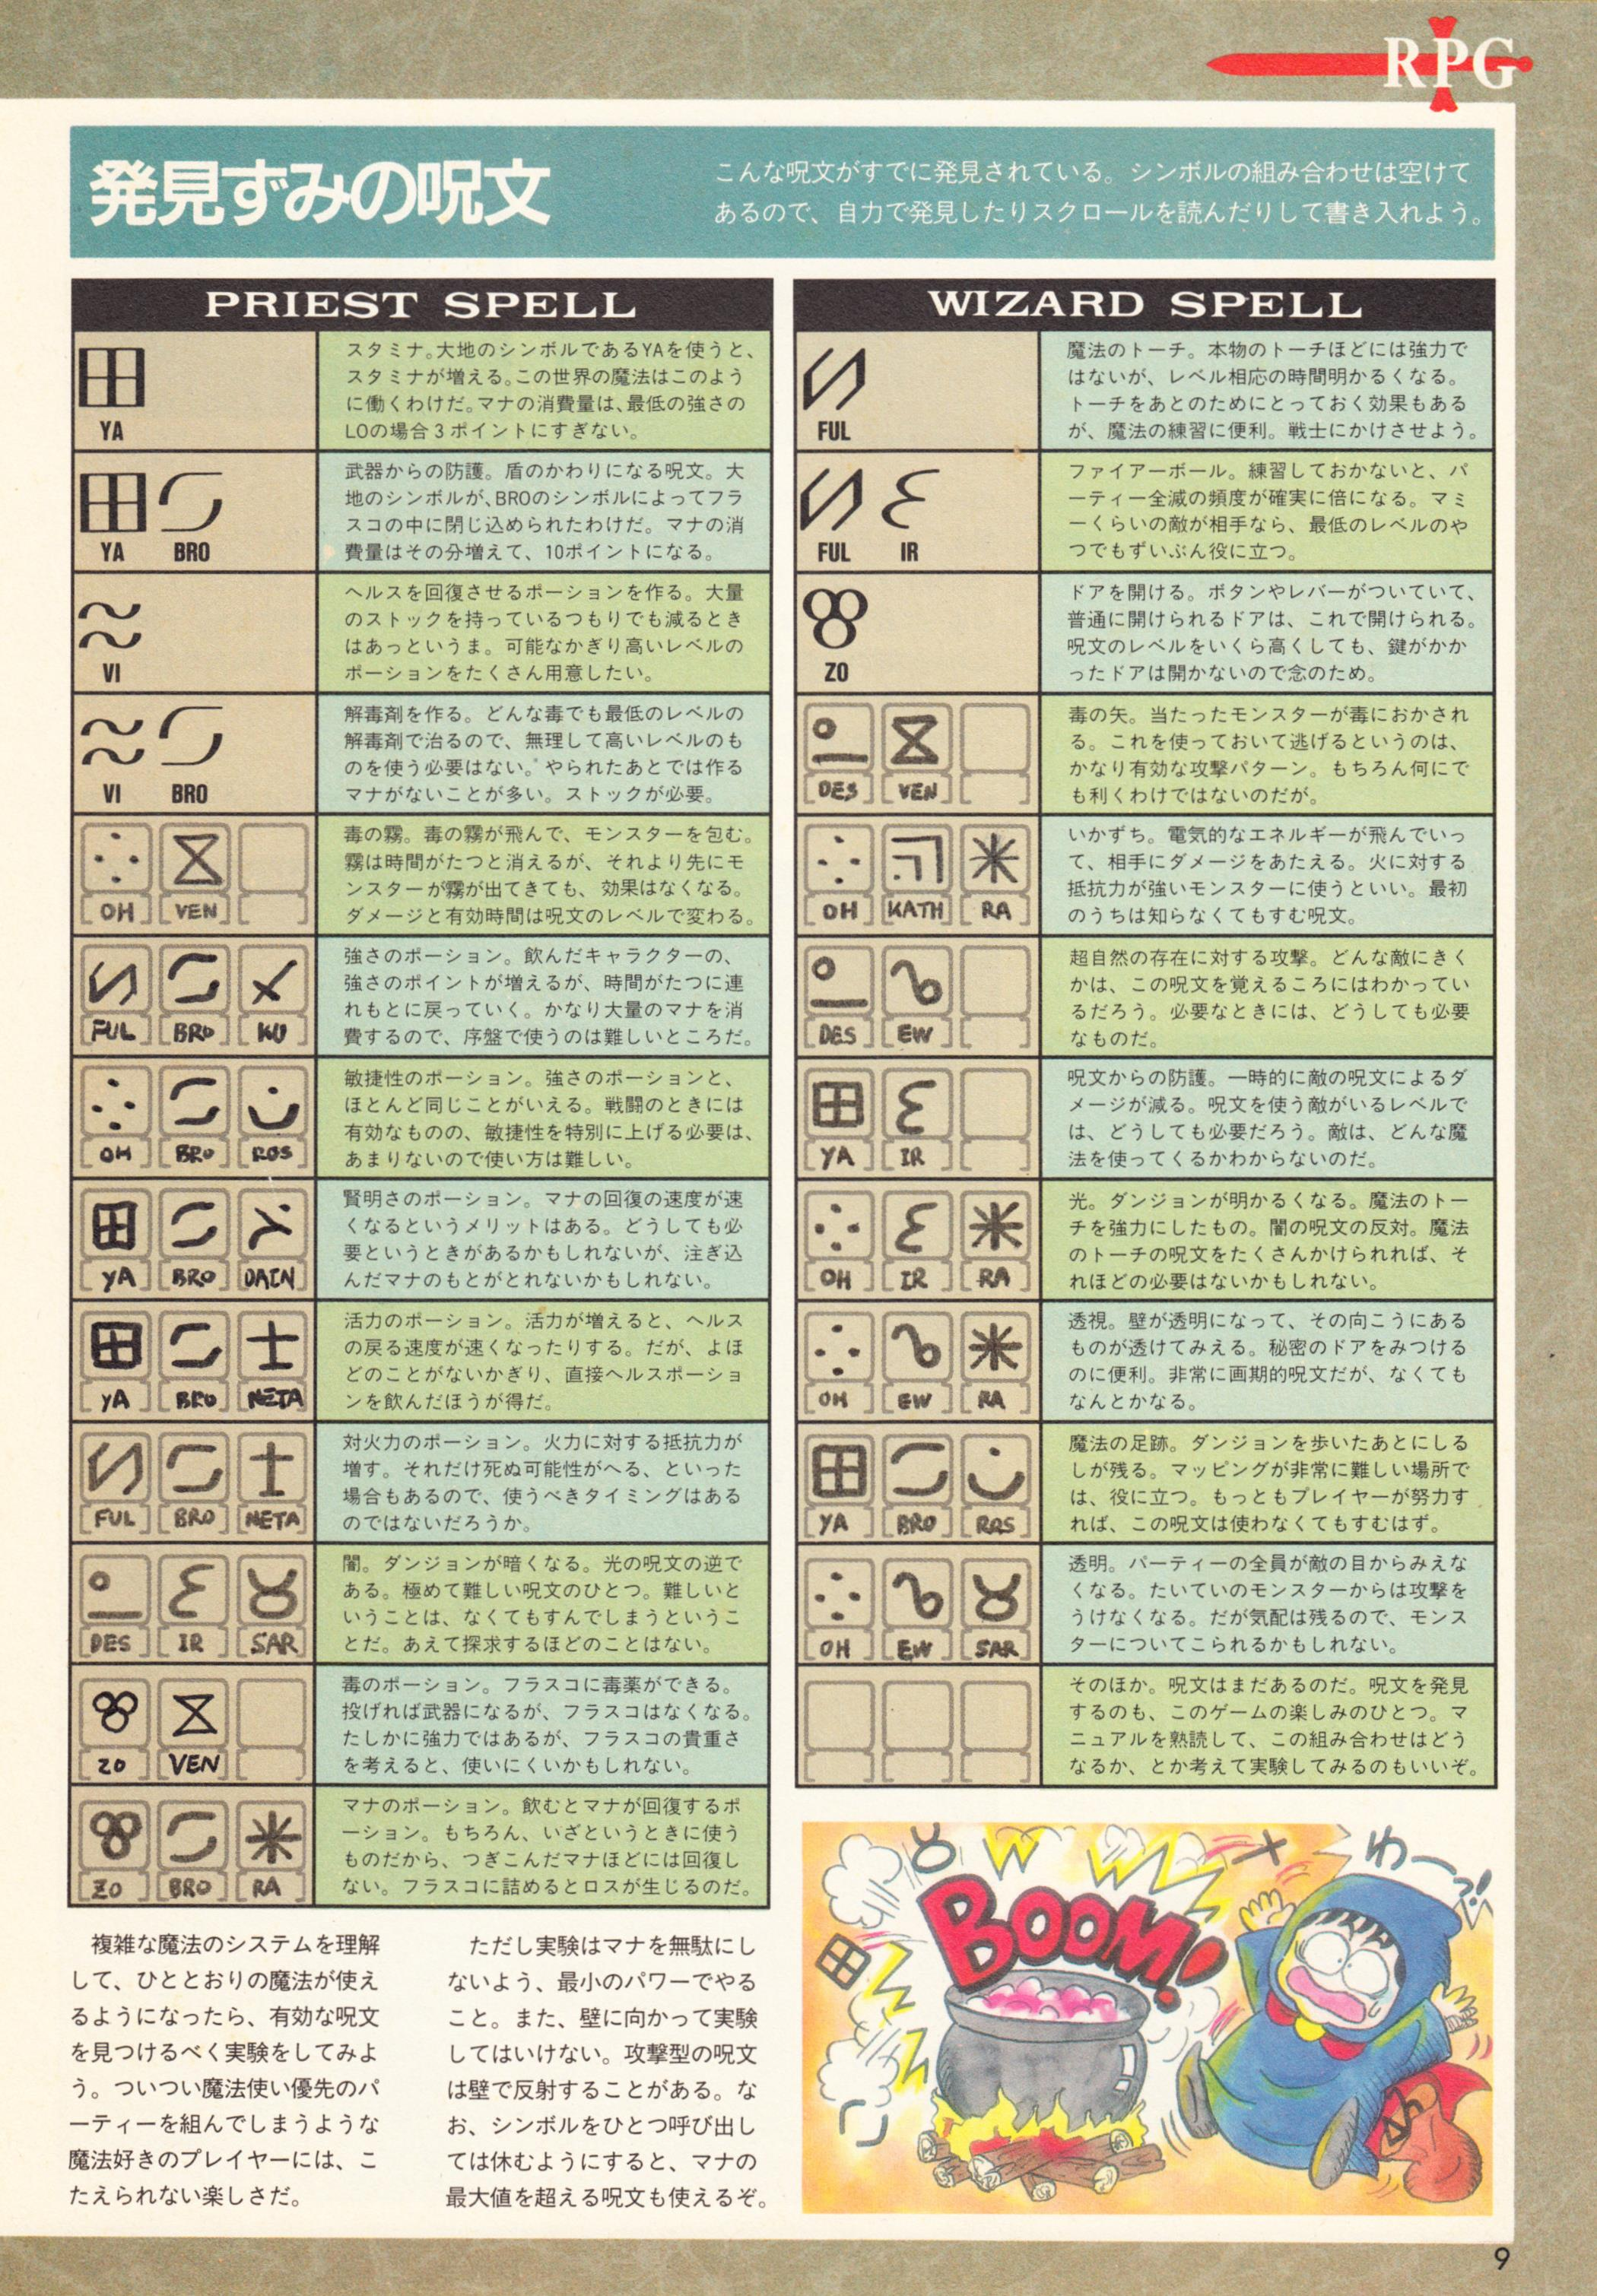 Special Supplement 2 - Dungeon Master Guide published in Japanese magazine 'Login', Vol 9 No 3 02 February 1990, Page 9